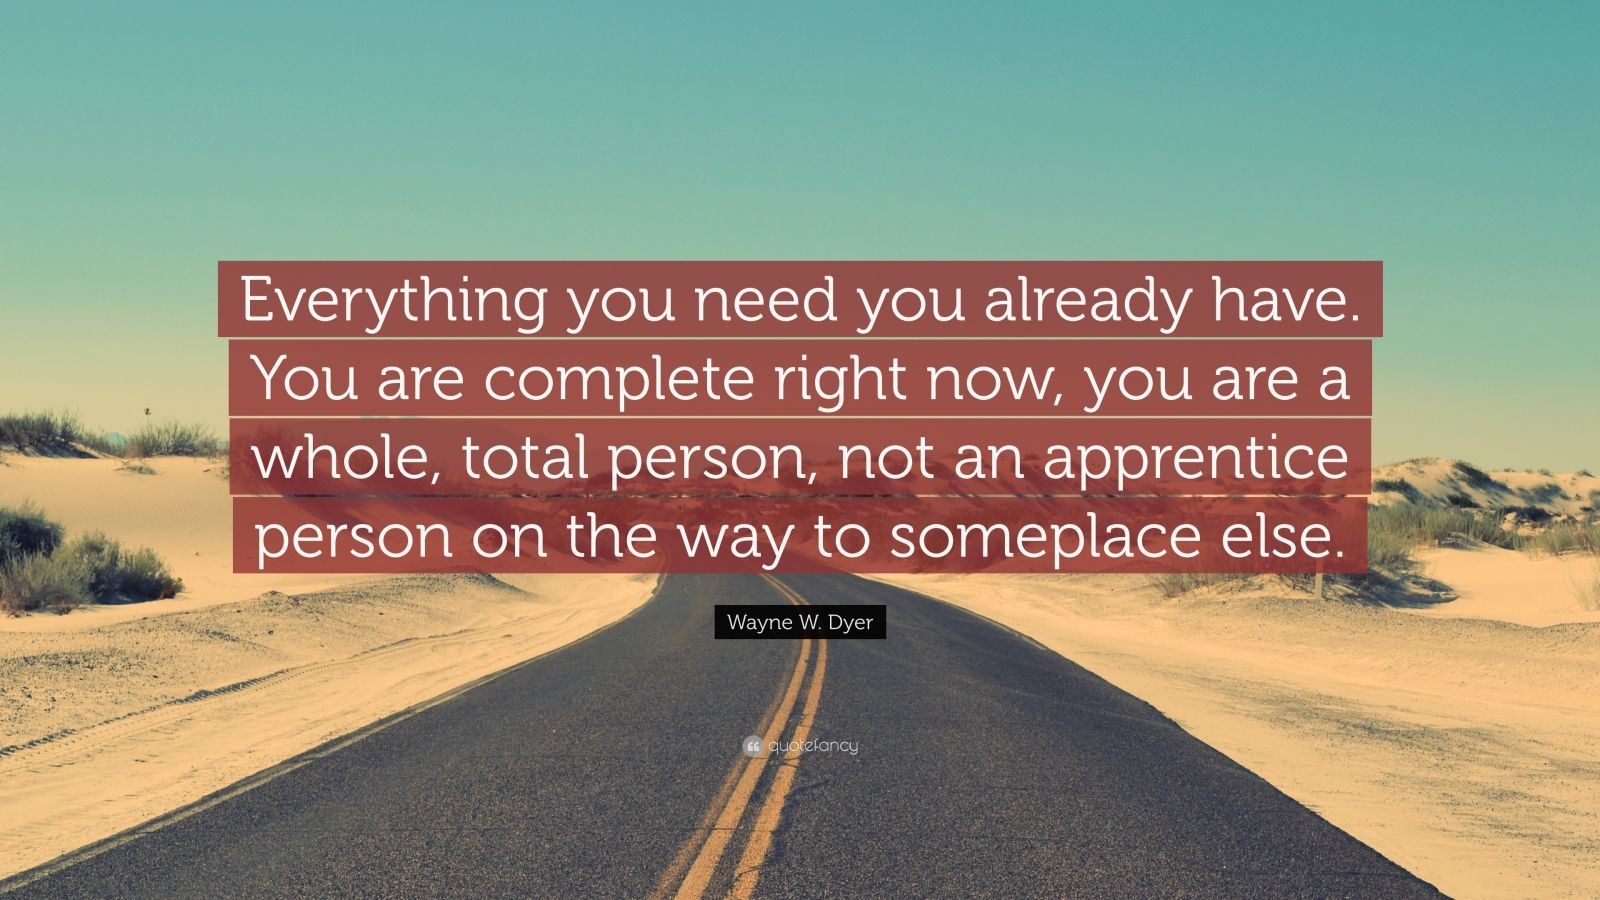 "Wayne W. Dyer Quote: ""Everything you need you already have. You are complete right now, you are a whole, total person, not an apprentice person on the way to someplace else."""